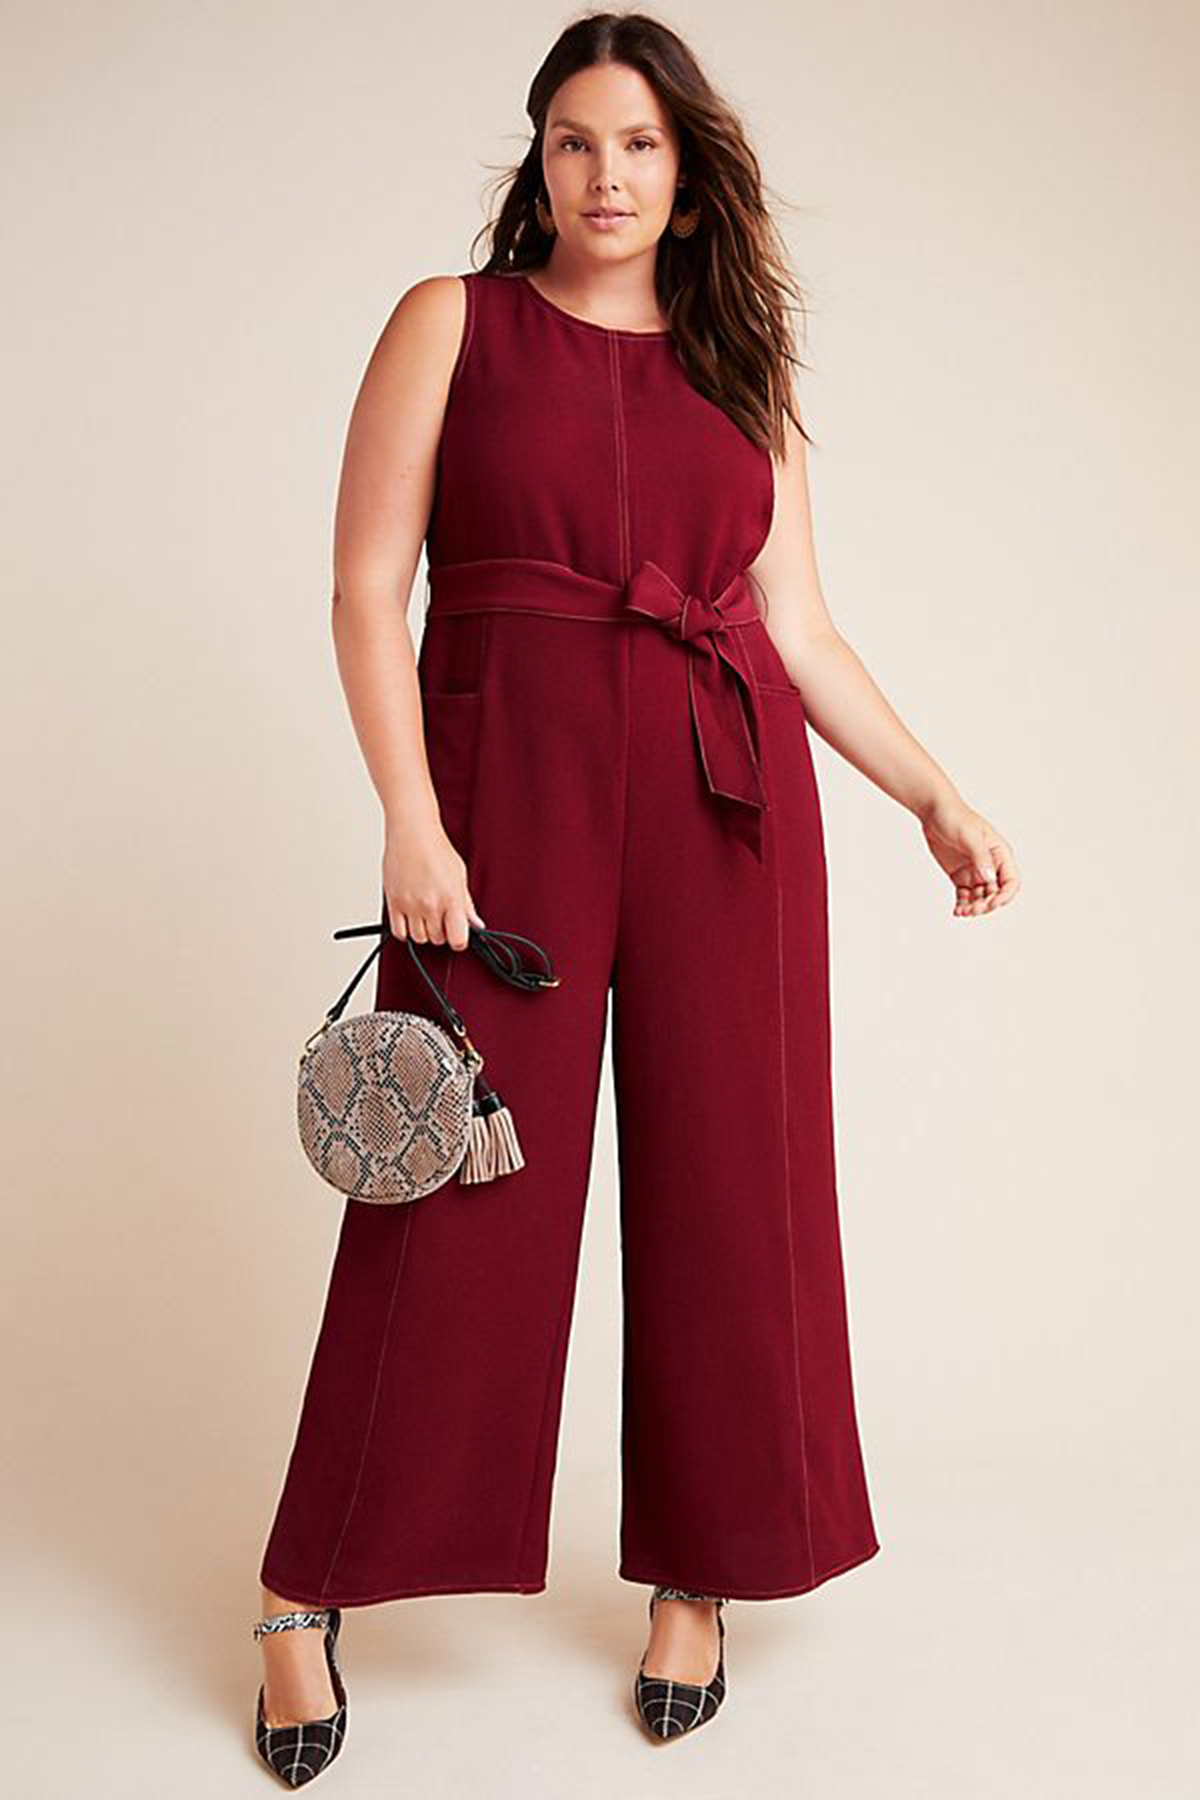 Anthropologie Greylin Colleen Stitched Jumpsuit